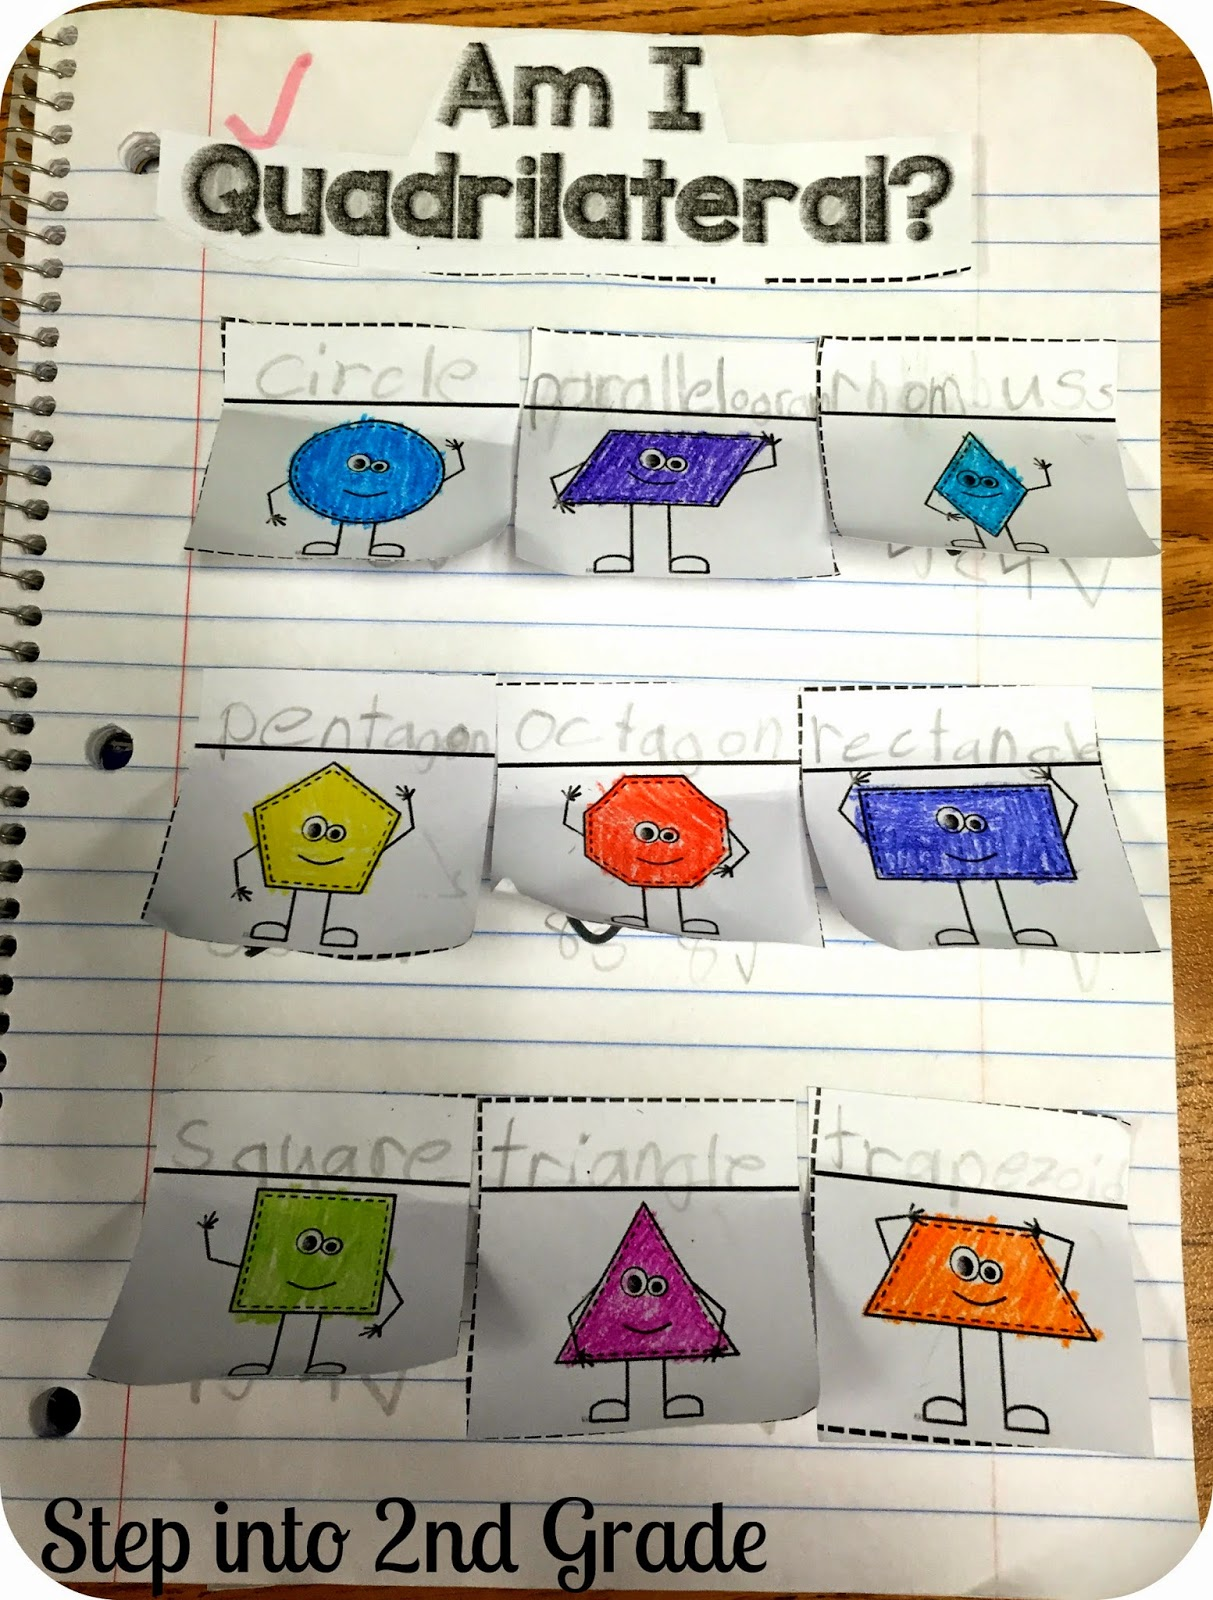 hight resolution of 2nd Grade Worksheet On Quadrilaterals   Printable Worksheets and Activities  for Teachers